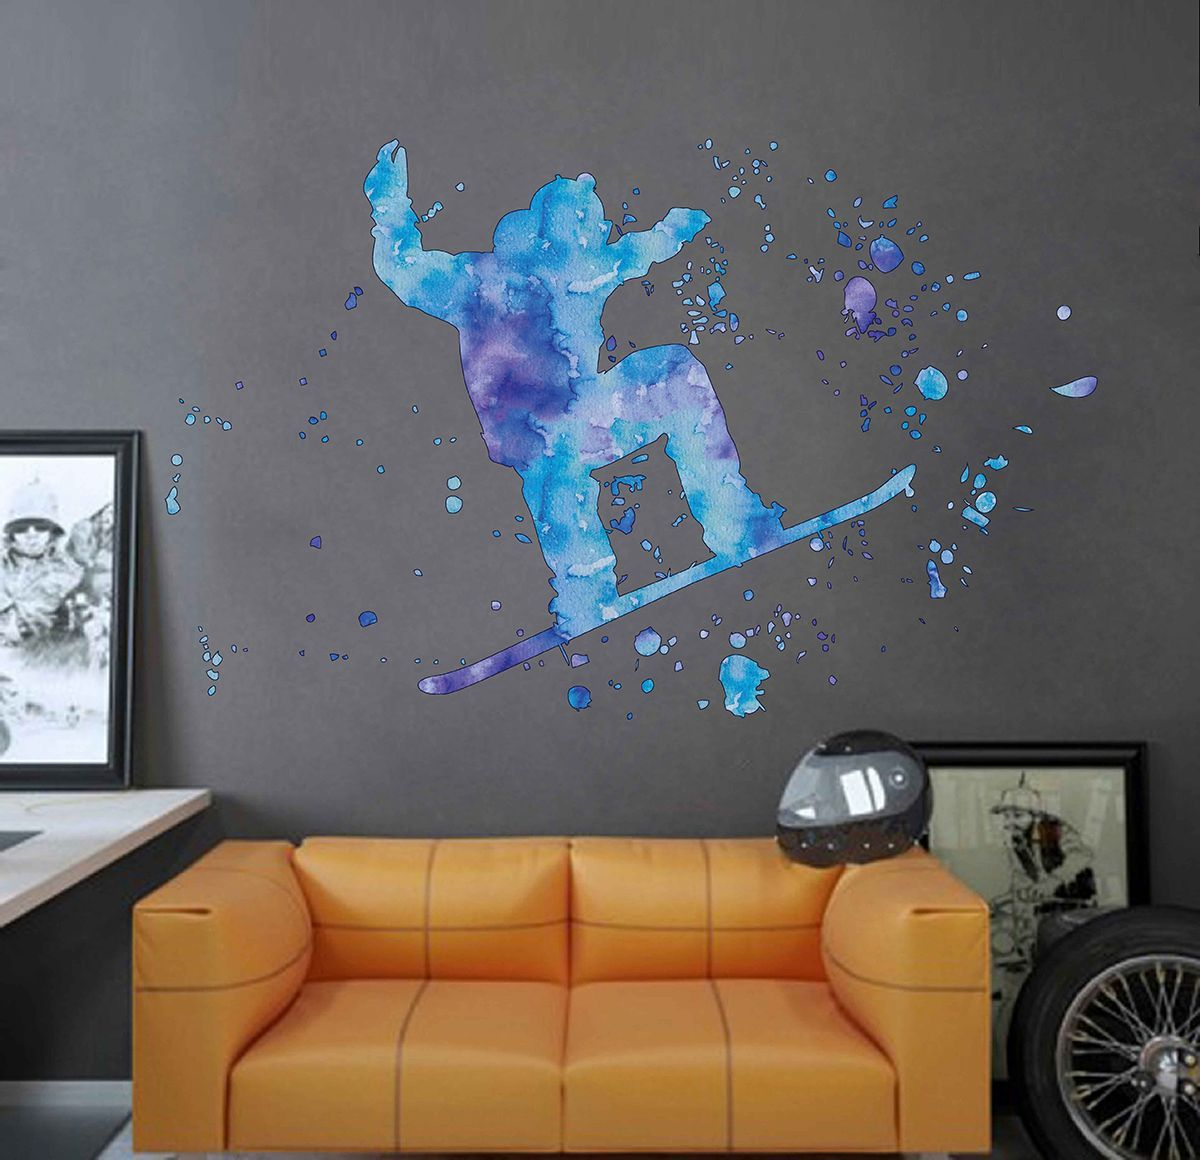 Cik1848 Full Color Wall Decal Watercolor Snowboarding Snowboarder Snow Sport Spray Paint Room Bedroom In 2019 Nate